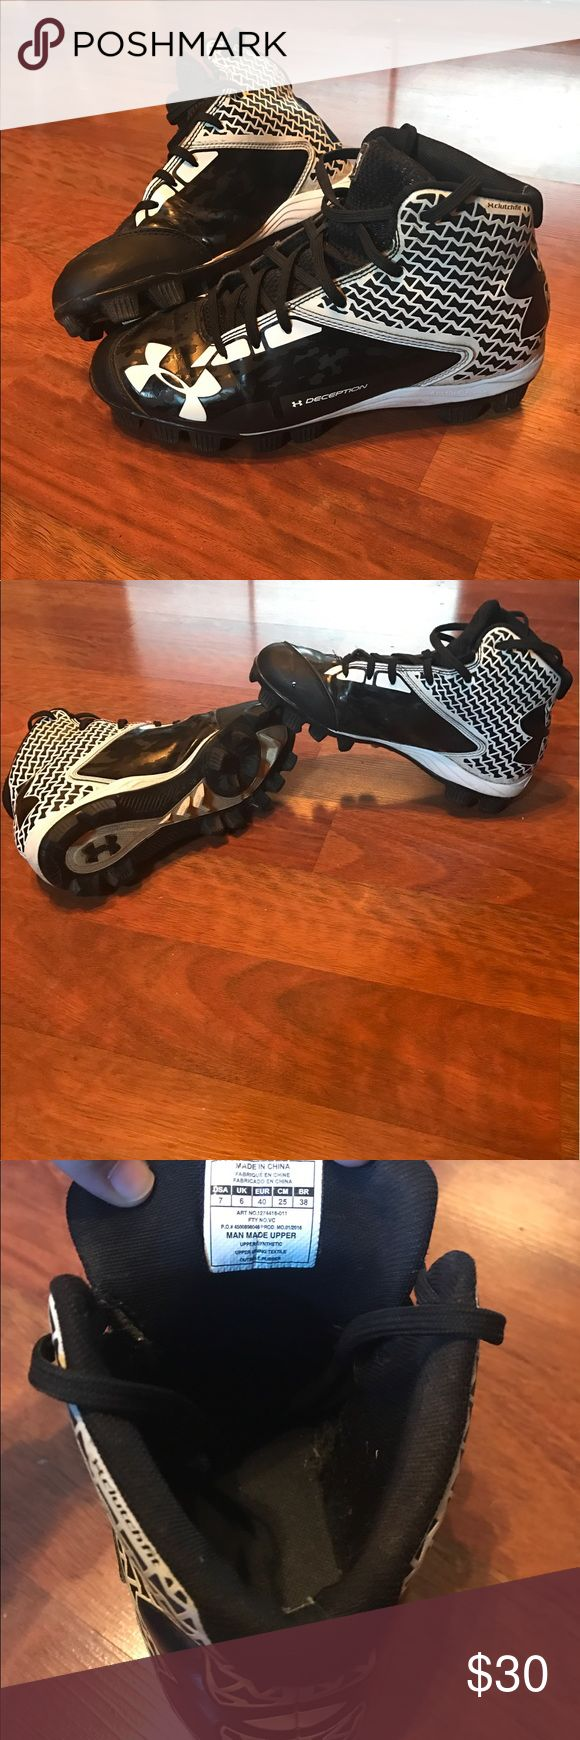 Boys under armour football cleats size 7 Size 7 under armour boys football cleats. These are black and white, my son wore them for one season, they are in excellent condition. Under Armour Shoes Lace Up Boots